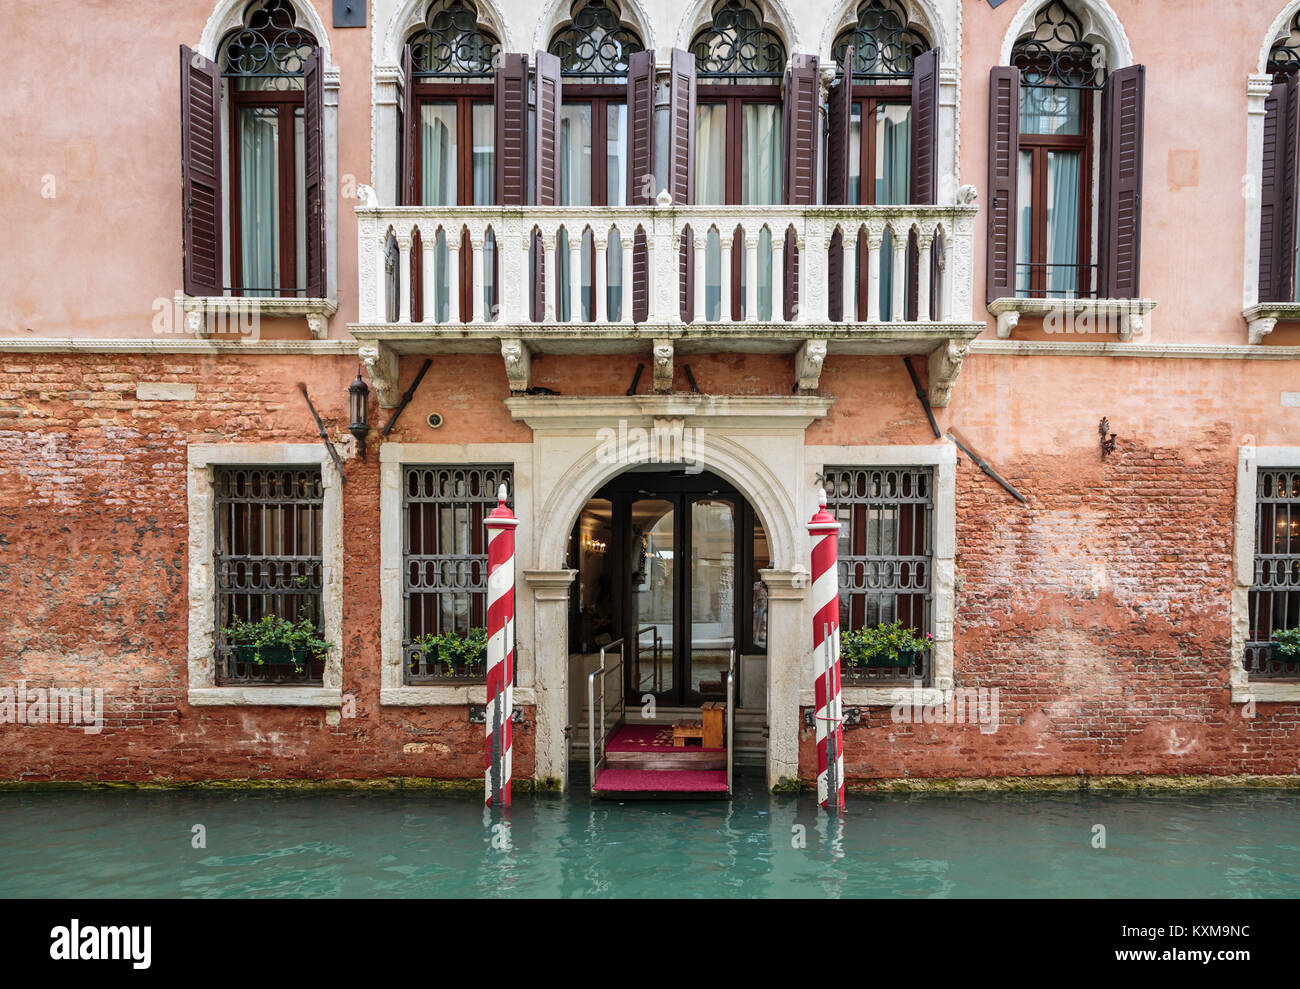 Building detail and canal in Veneto, Venice, Italy, Europe. - Stock Image